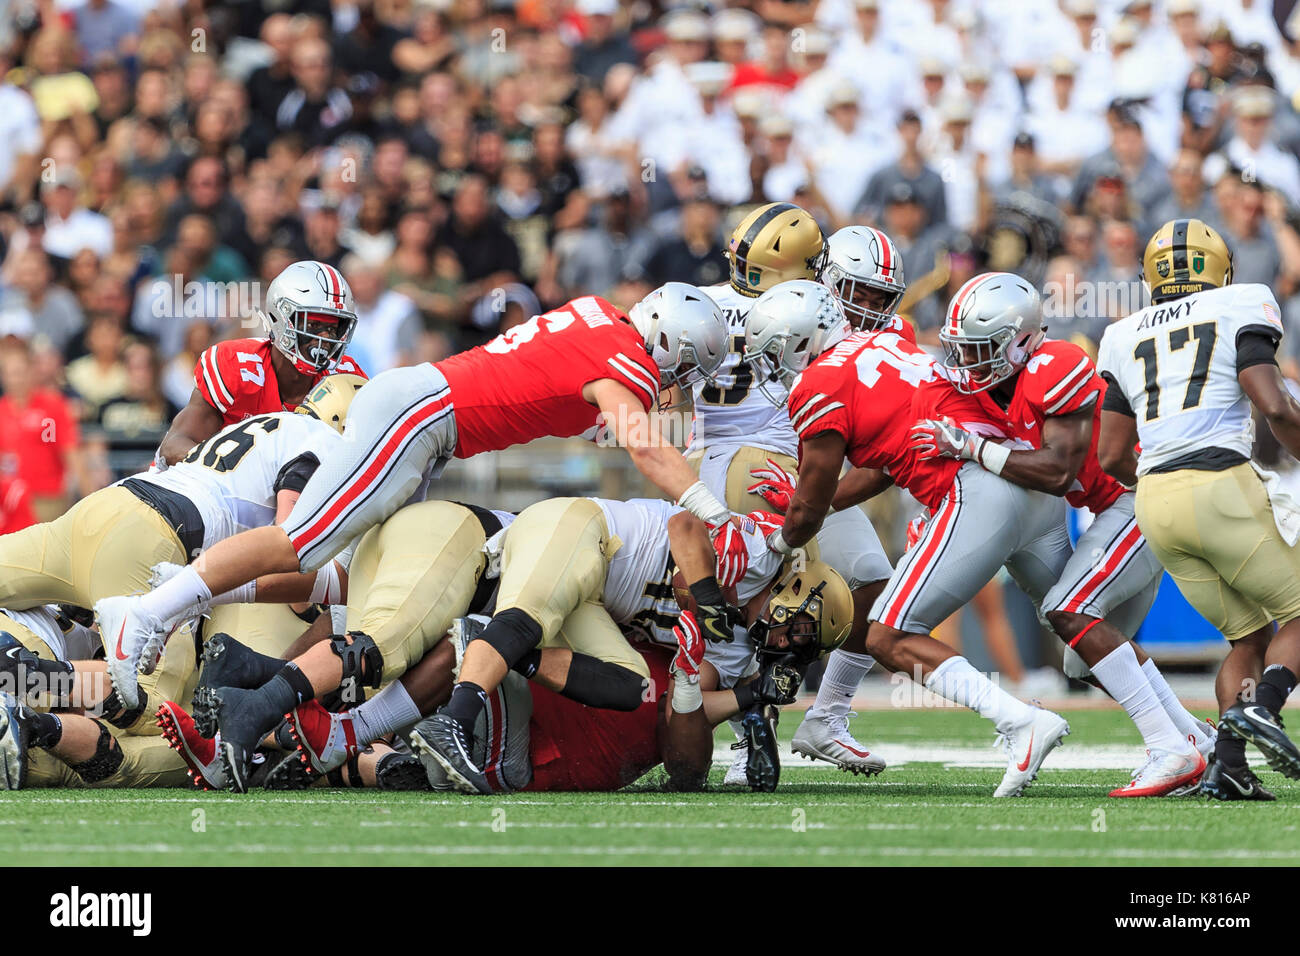 Image result for images of piling on in football